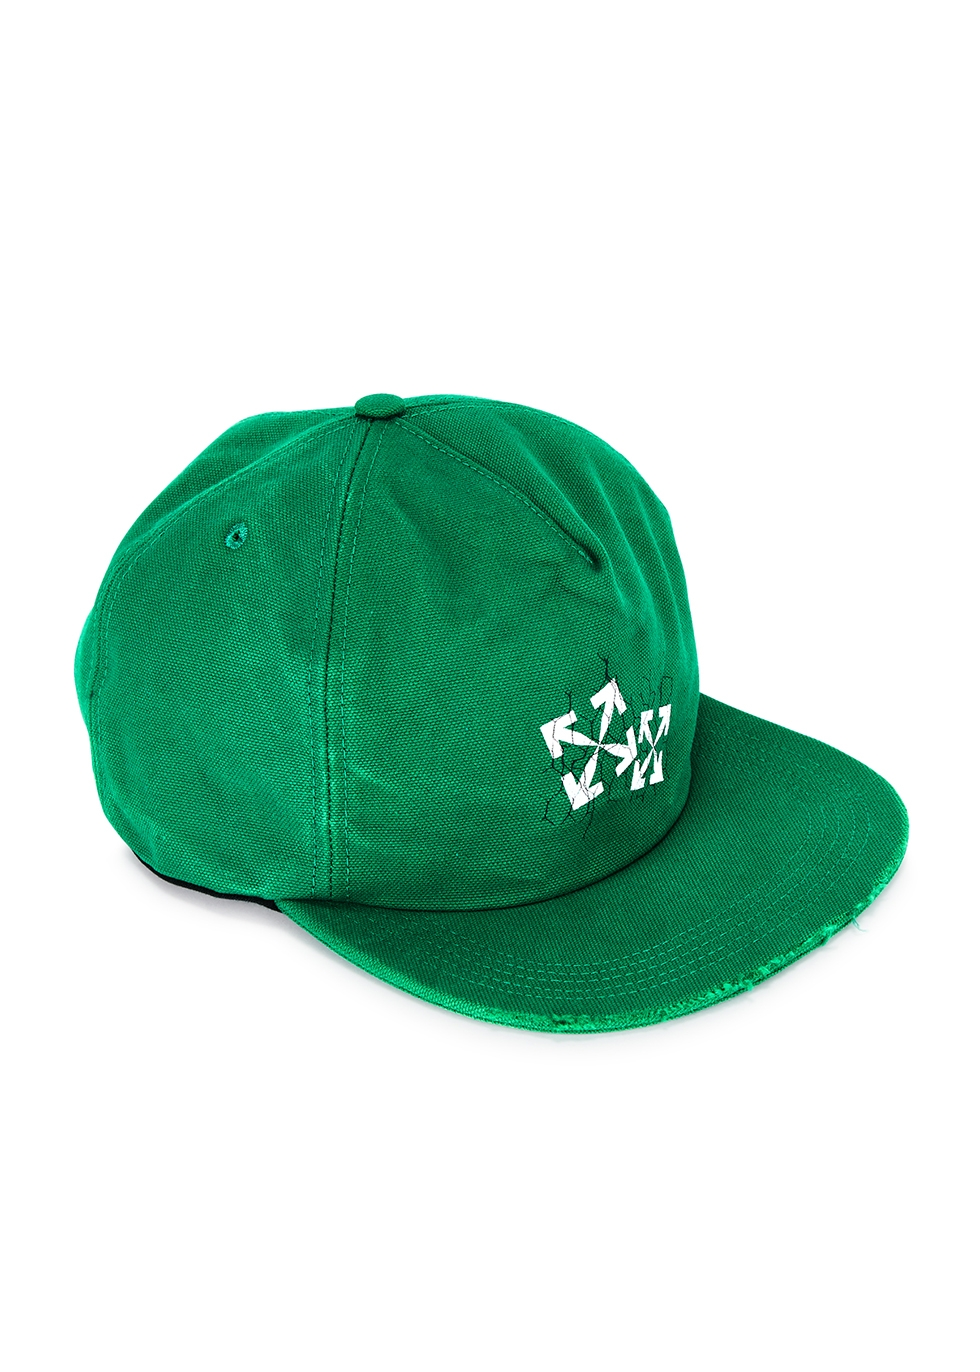 Fence Arrows green canvas cap